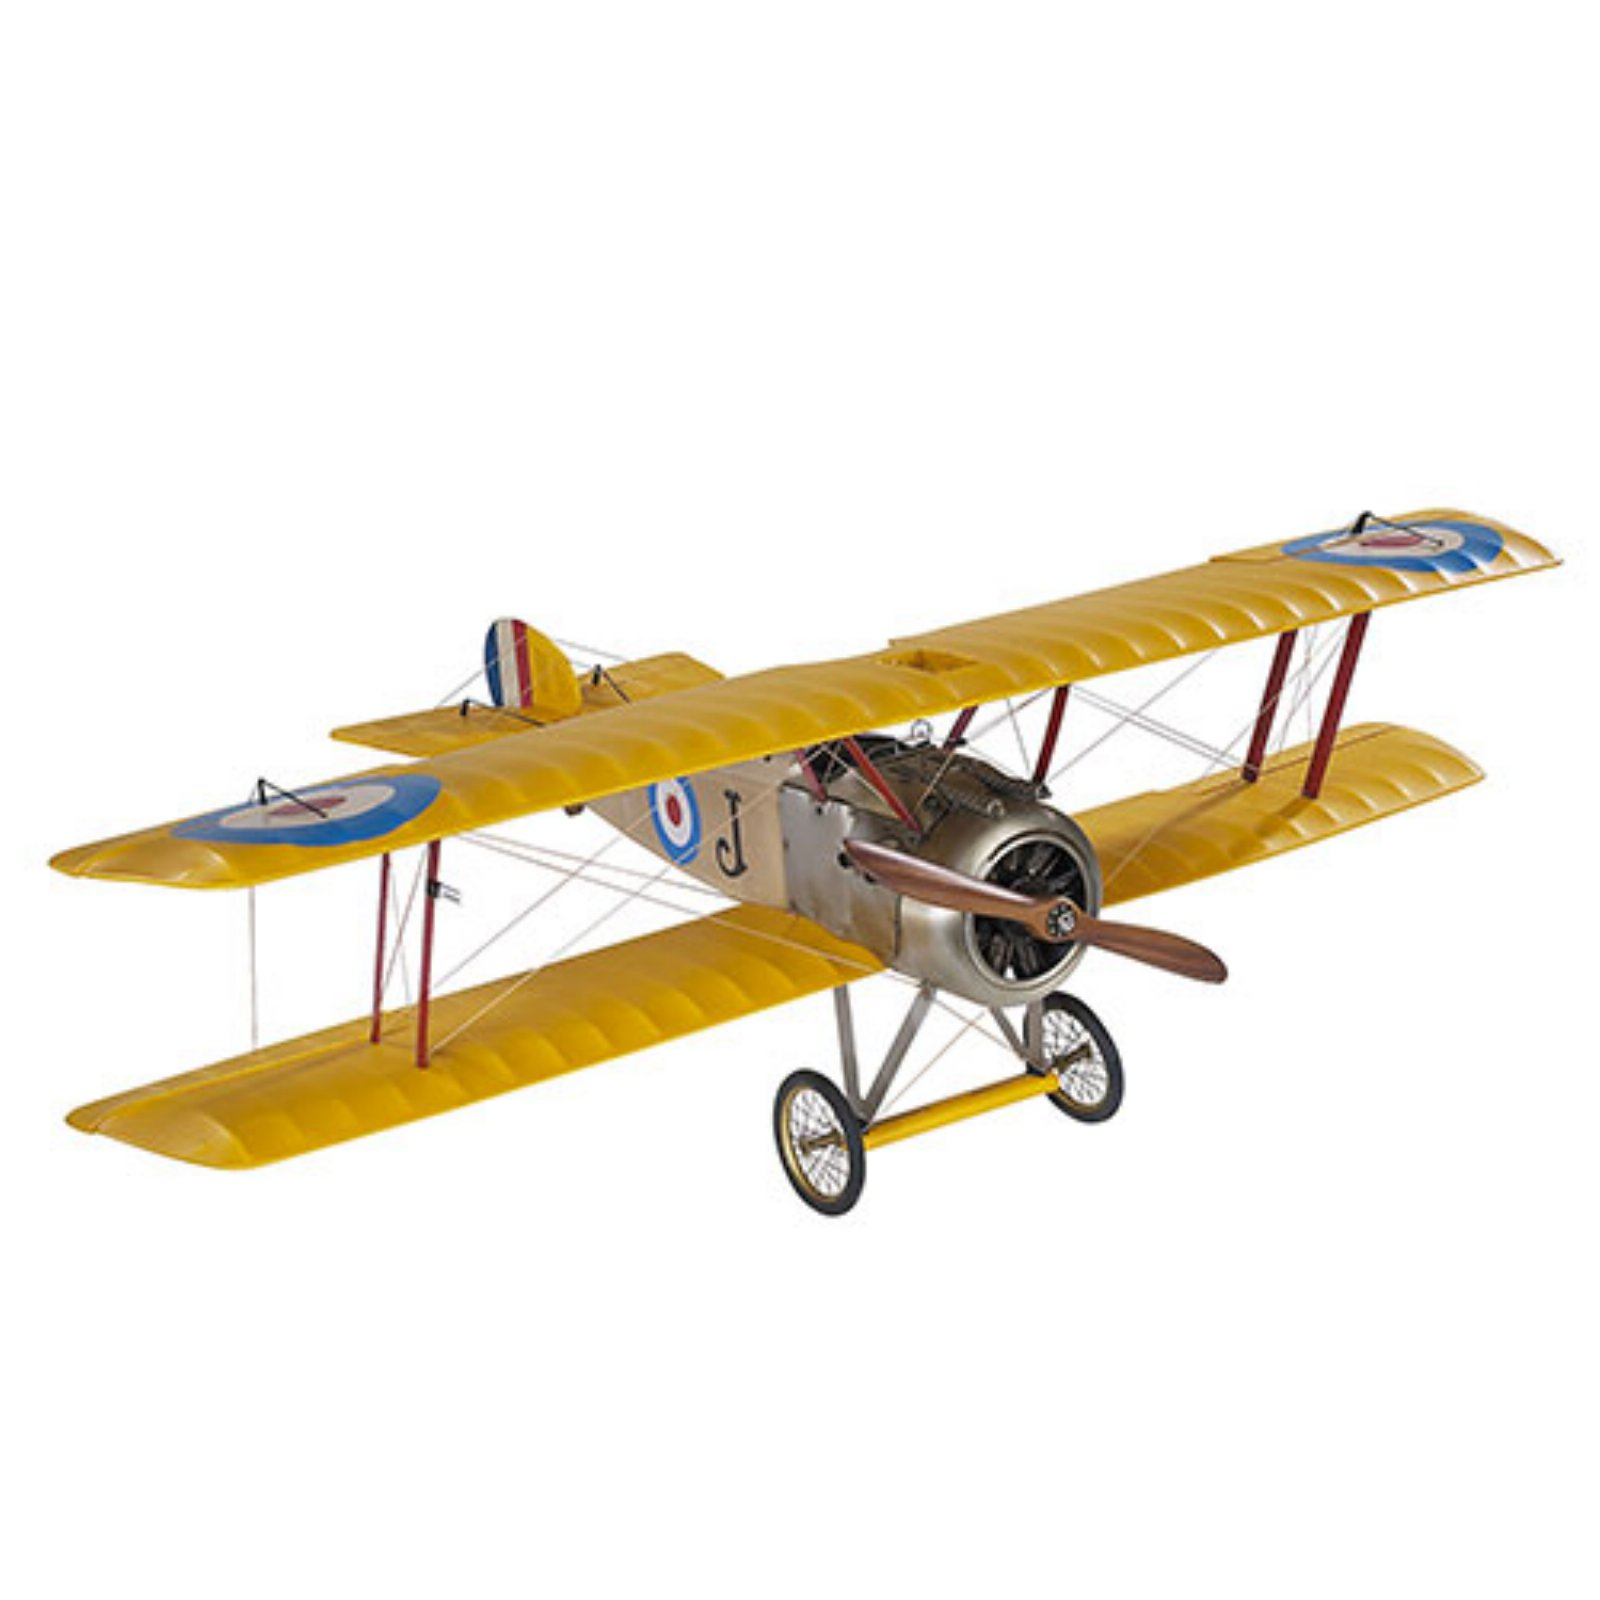 Authentic Models Sopwith Camel Model Airplane Medium by Authentic Models